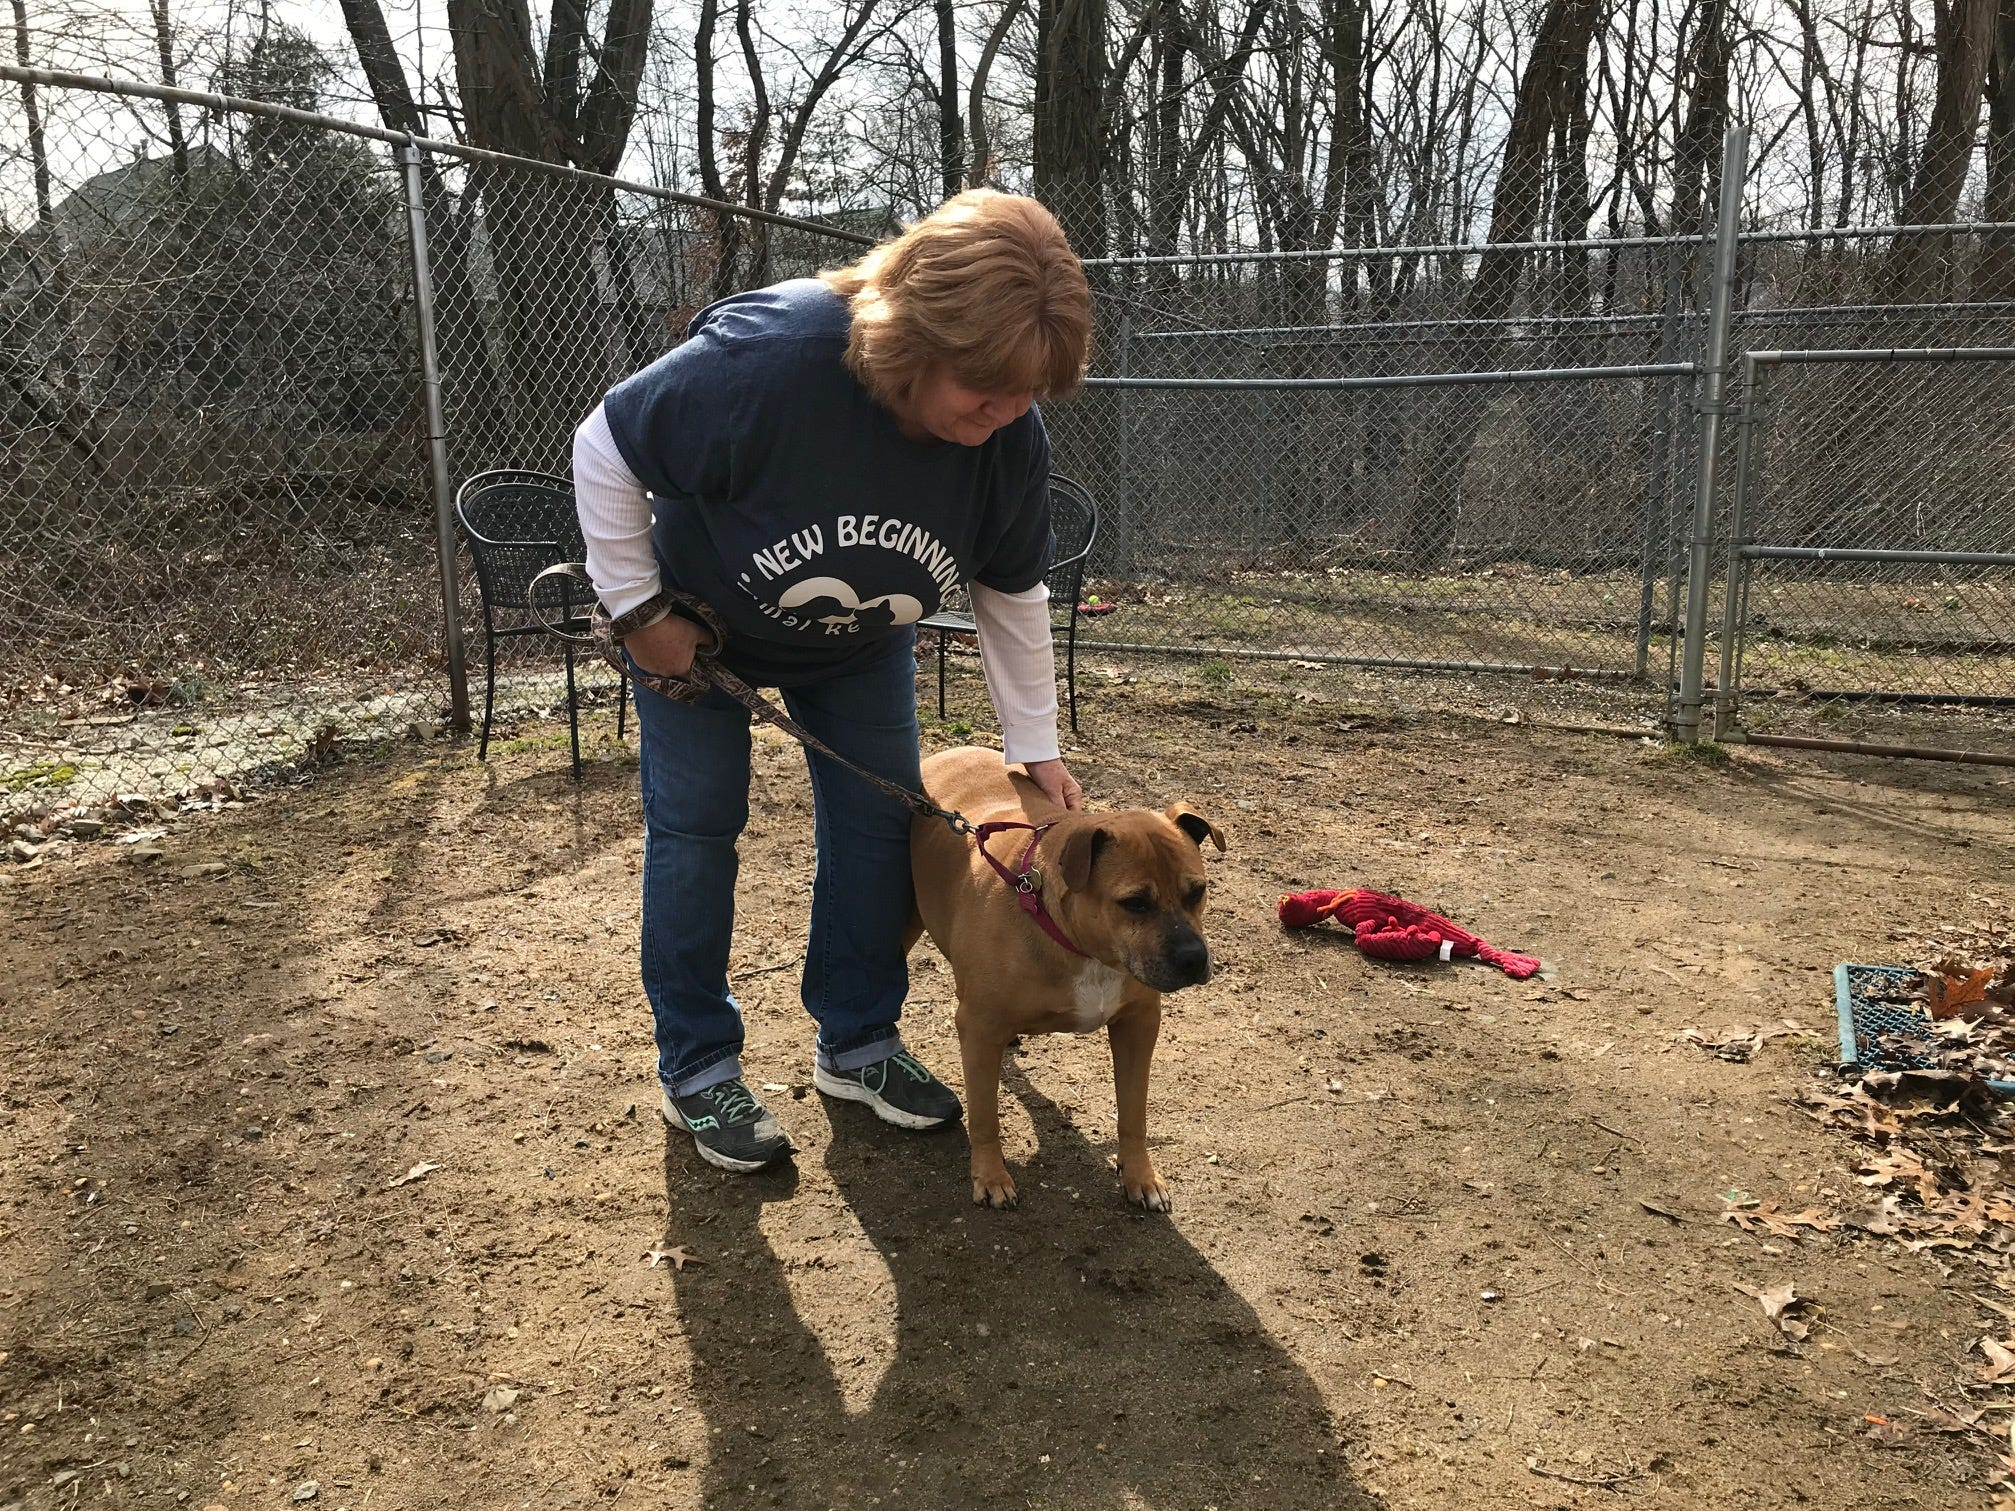 Princess, a boxer/pit mix, is 11 and loves to play. She can be adopted at New Beginnings Animal Rescue in East Brunswick.